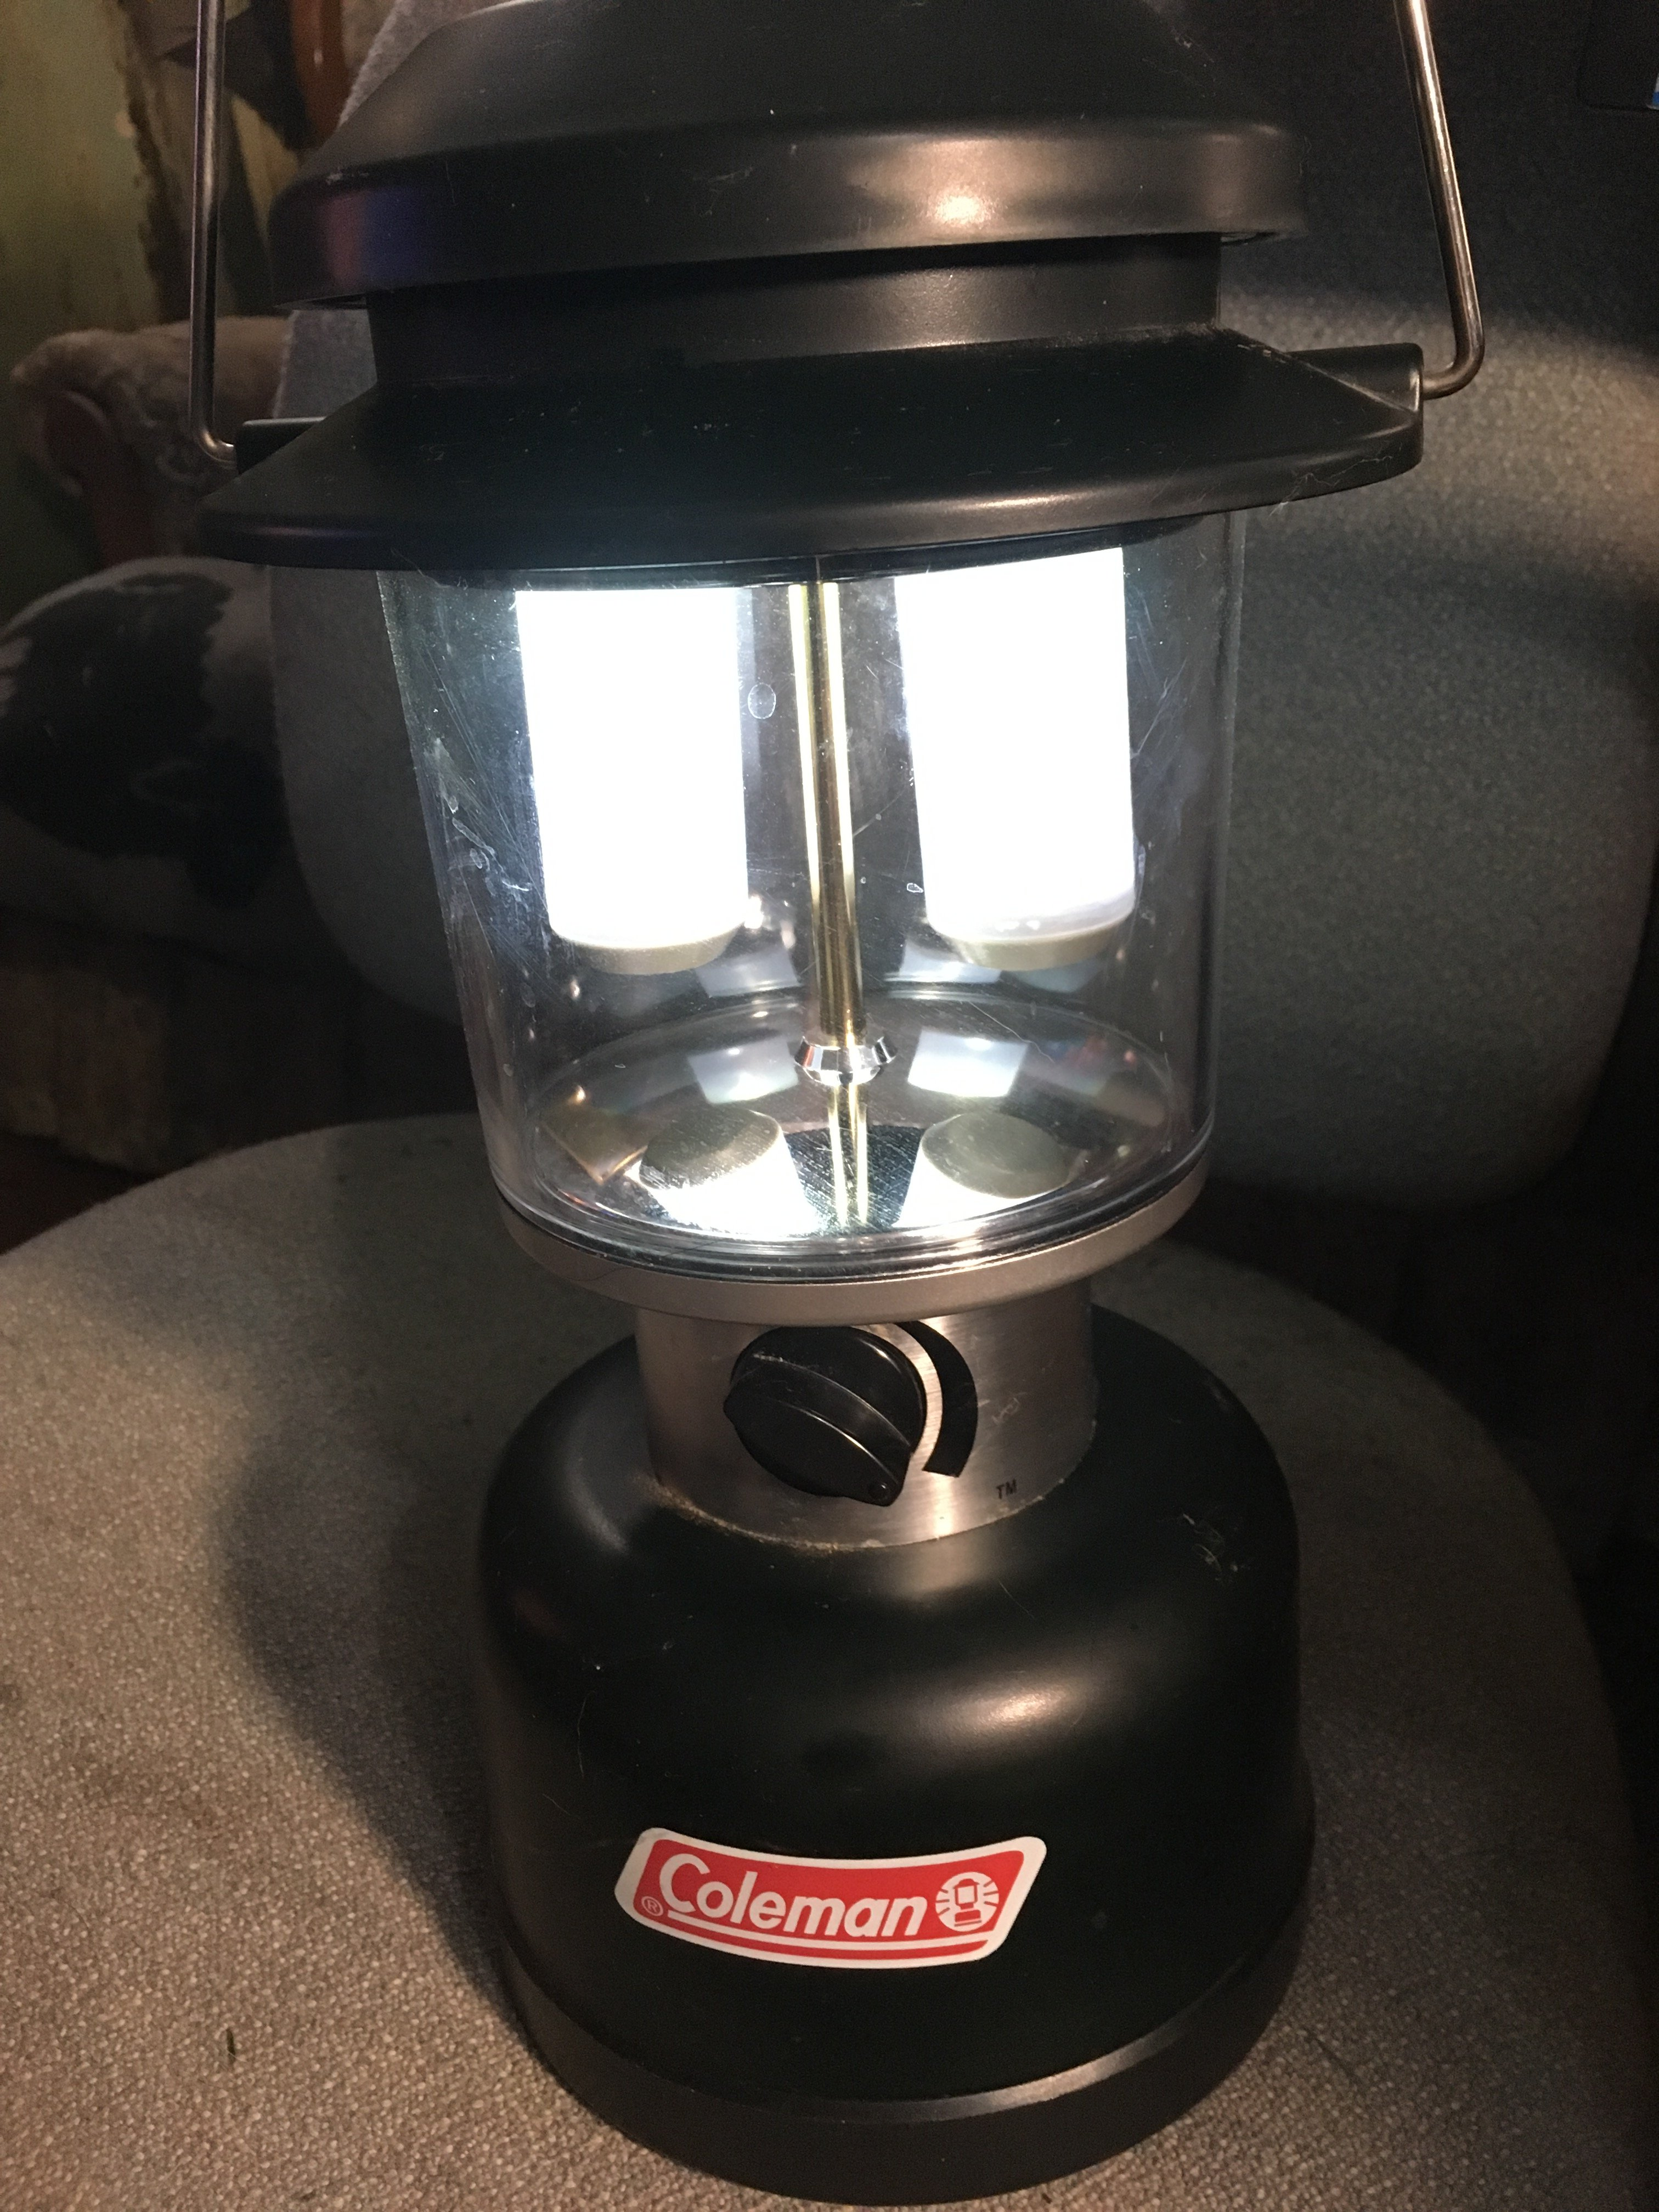 Coleman Electric Lantern And Sailboat Shore Power Cord Michigan Sportsman Online Michigan Hunting And Fishing Resource